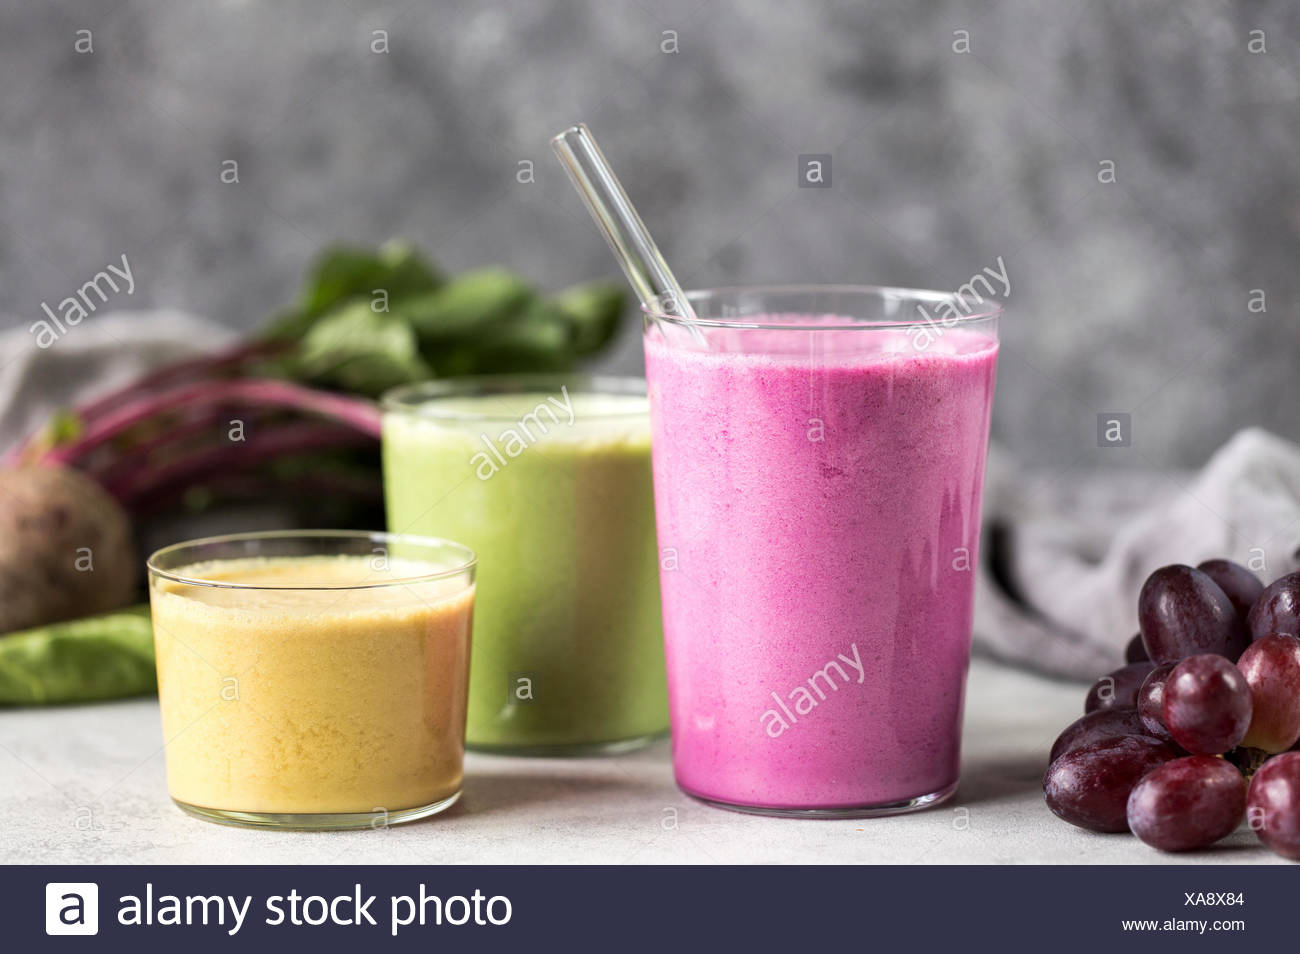 3 glasses of Multi-Colored Beet Smoothies are photographed from the front view. - Stock Image